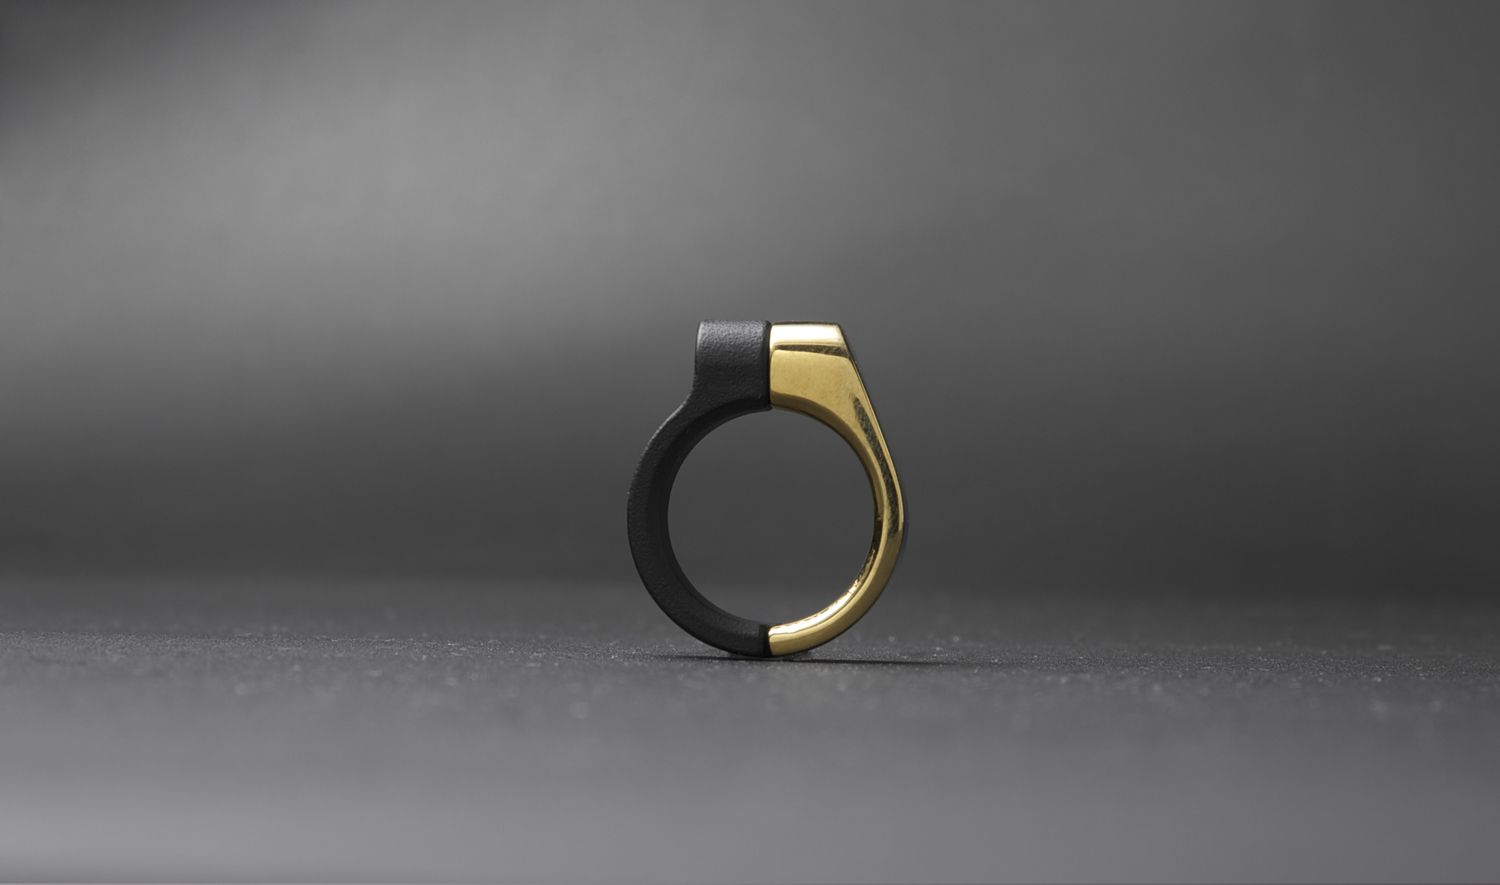 drilling-lab-bicycle-inspired-jewelry-gessato-gblog-4